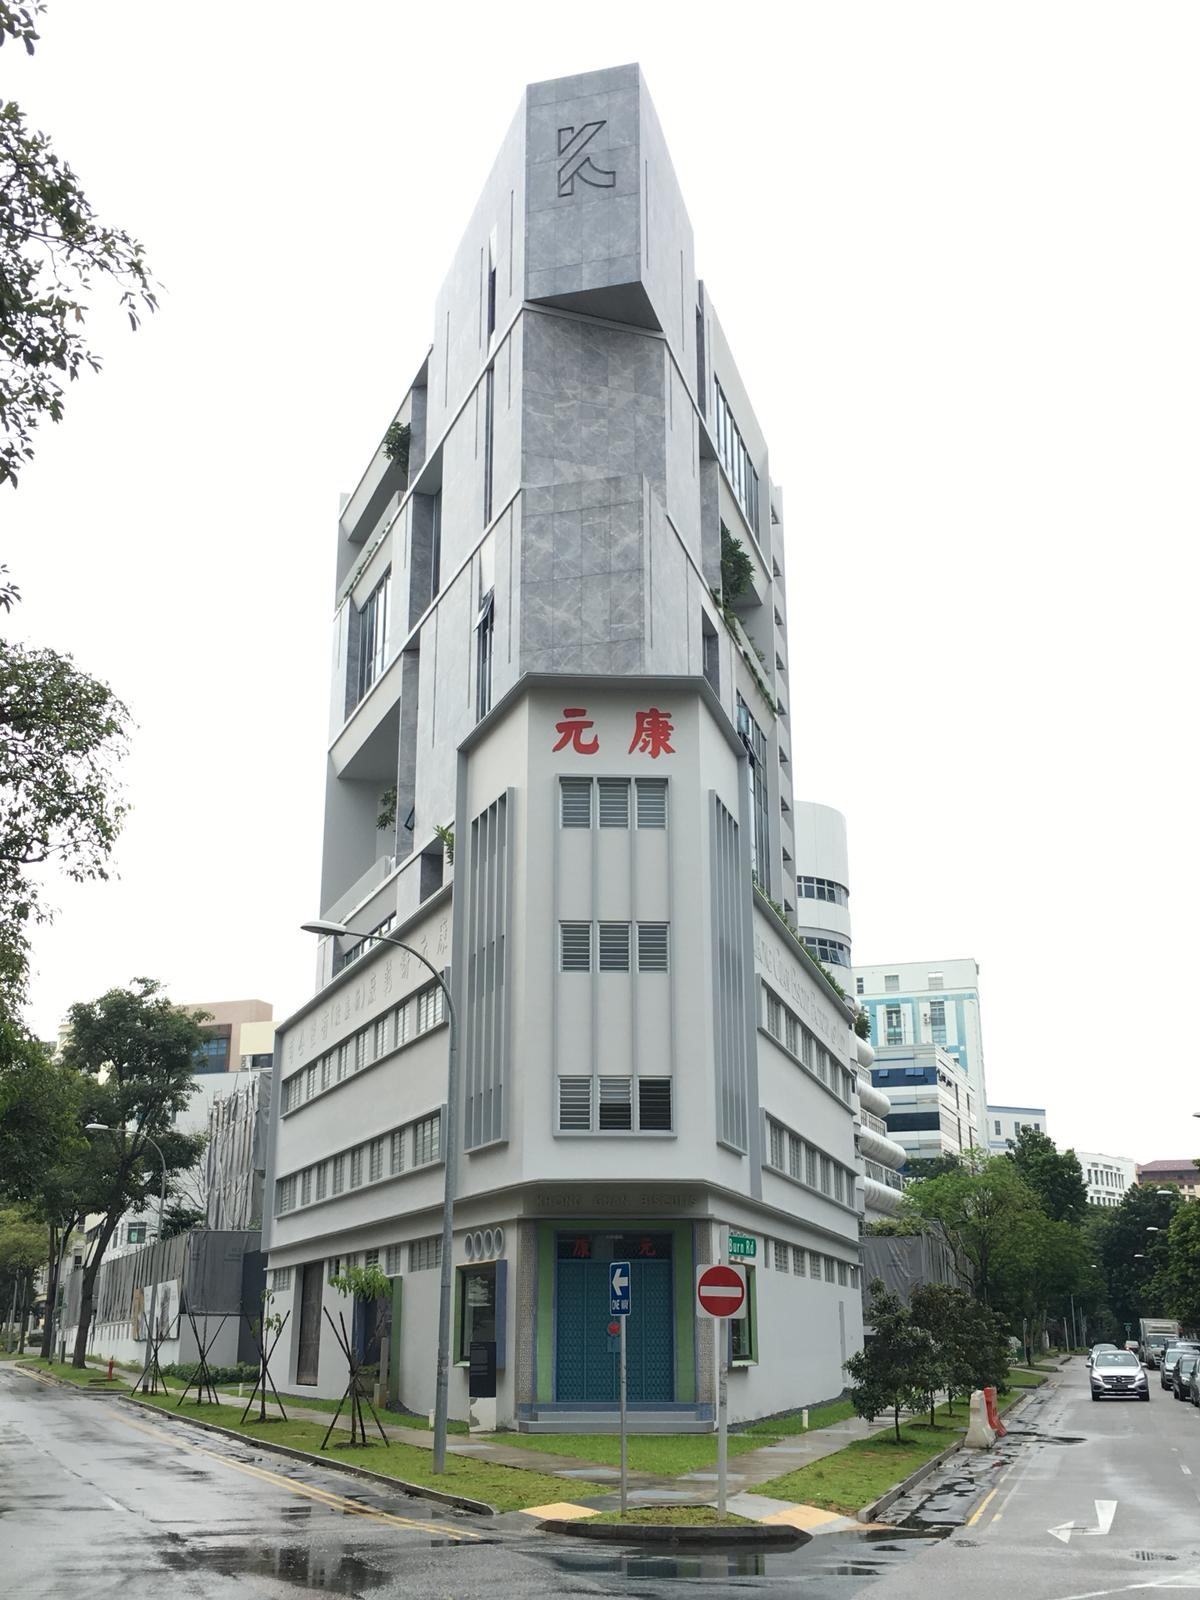 Khong Guan Biscuit Factory at 20 MacTaggart Road